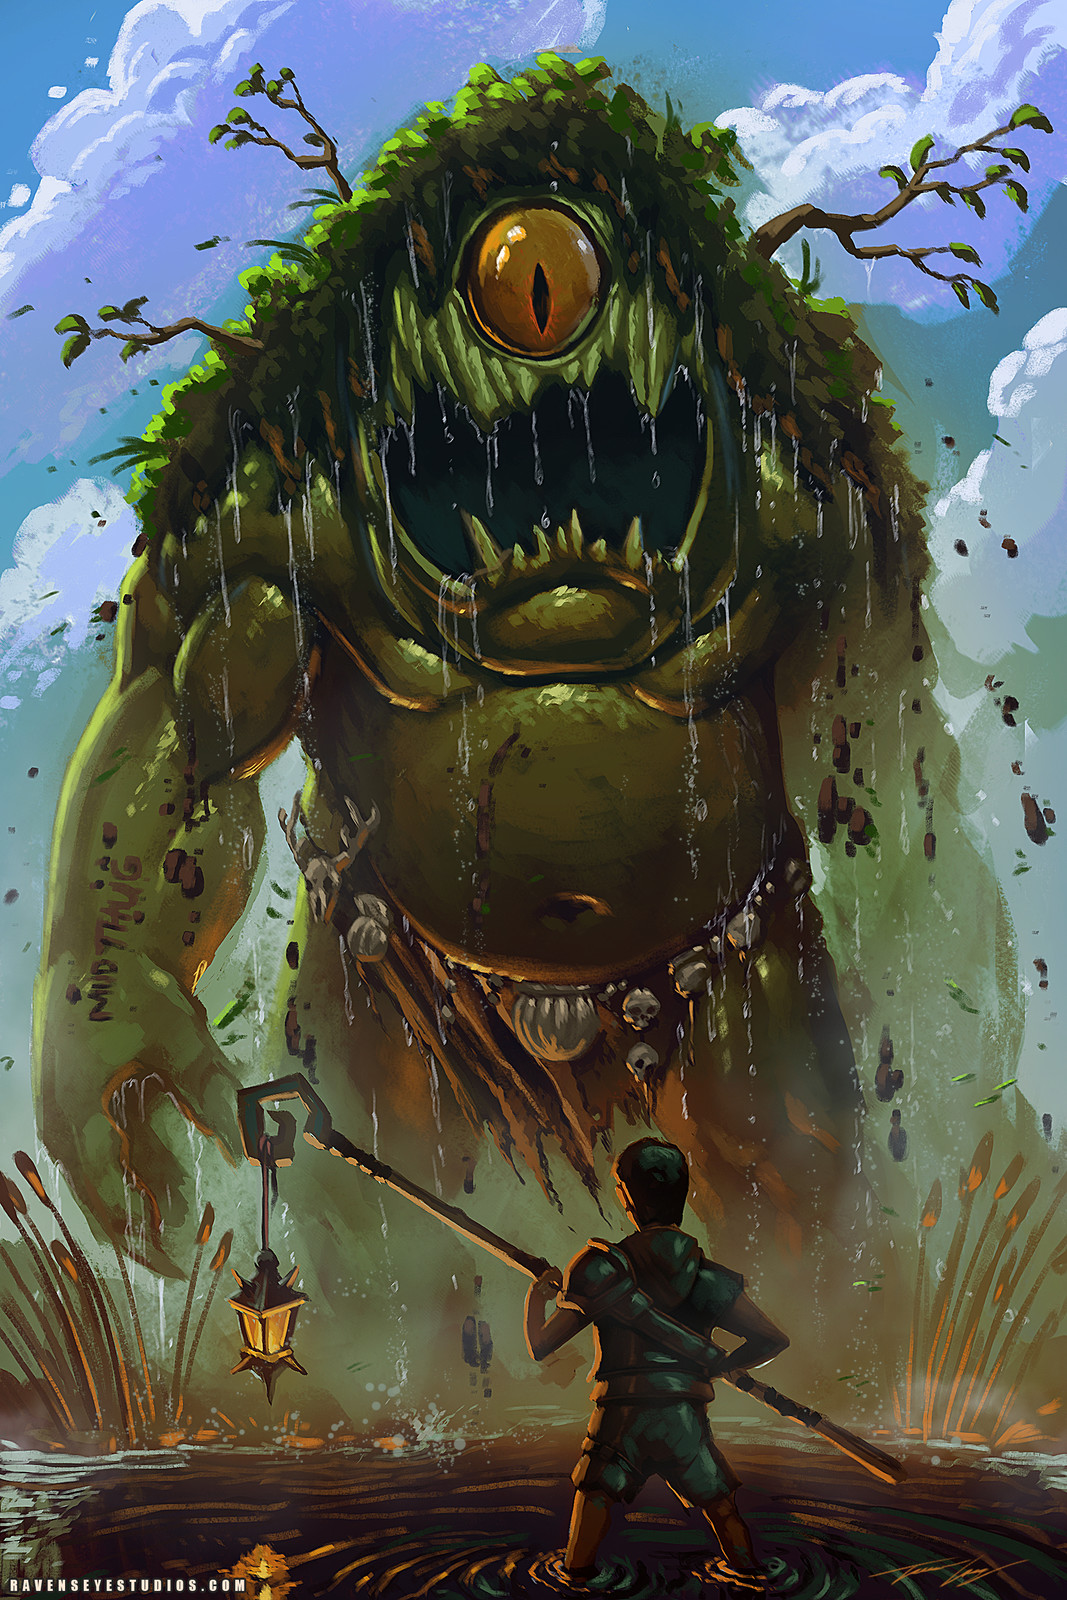 Swamp creature and the boy